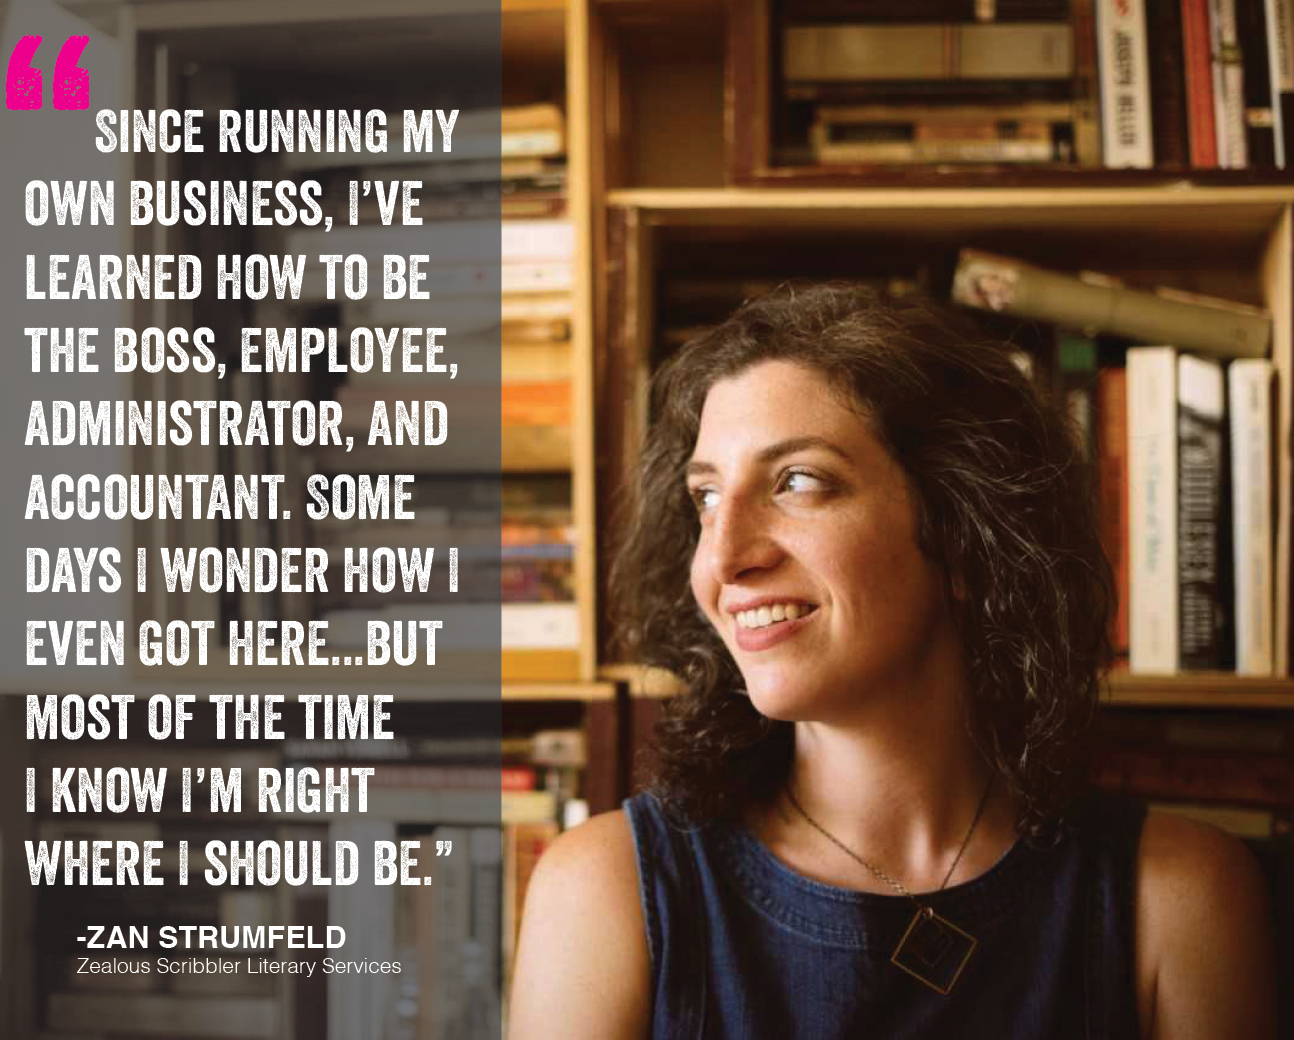 """""""Since running my own business, I've learned how to be the boss, employee, administrator, and accountant. Some days I wonder how I got here...But most of the time I know I'm right where I should be."""" - Zan strumfeld, Zealous Scribbler Literary Service"""